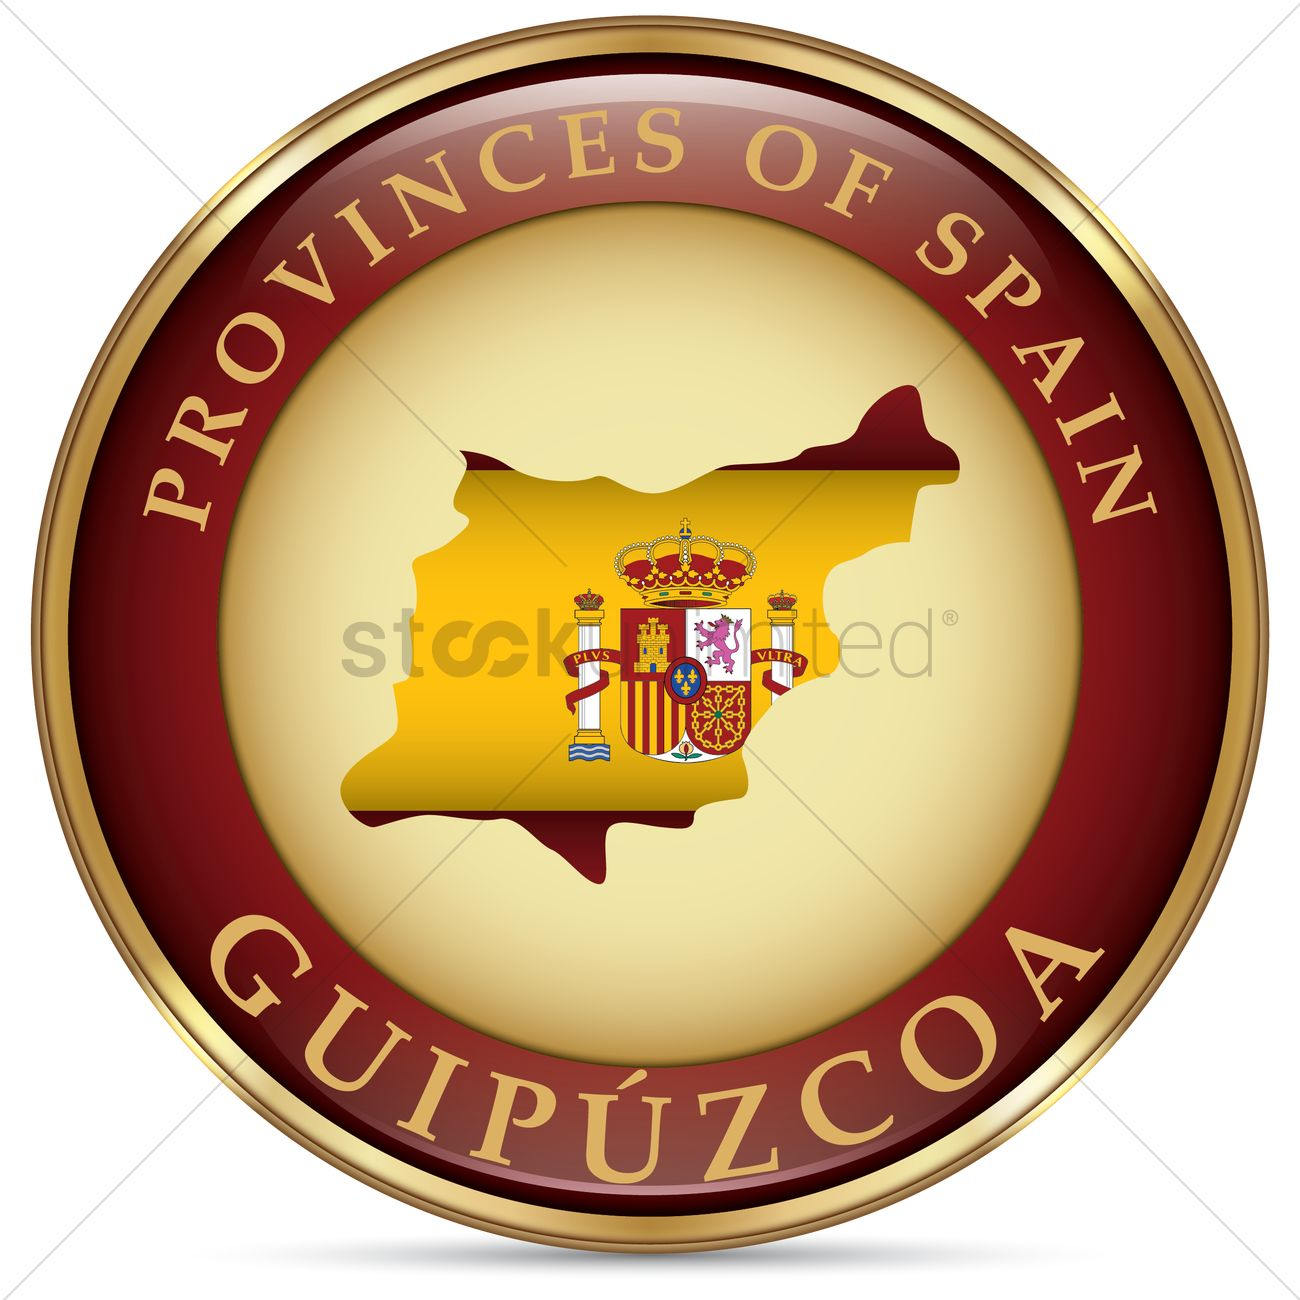 Guipuzcoa map Vector Image.